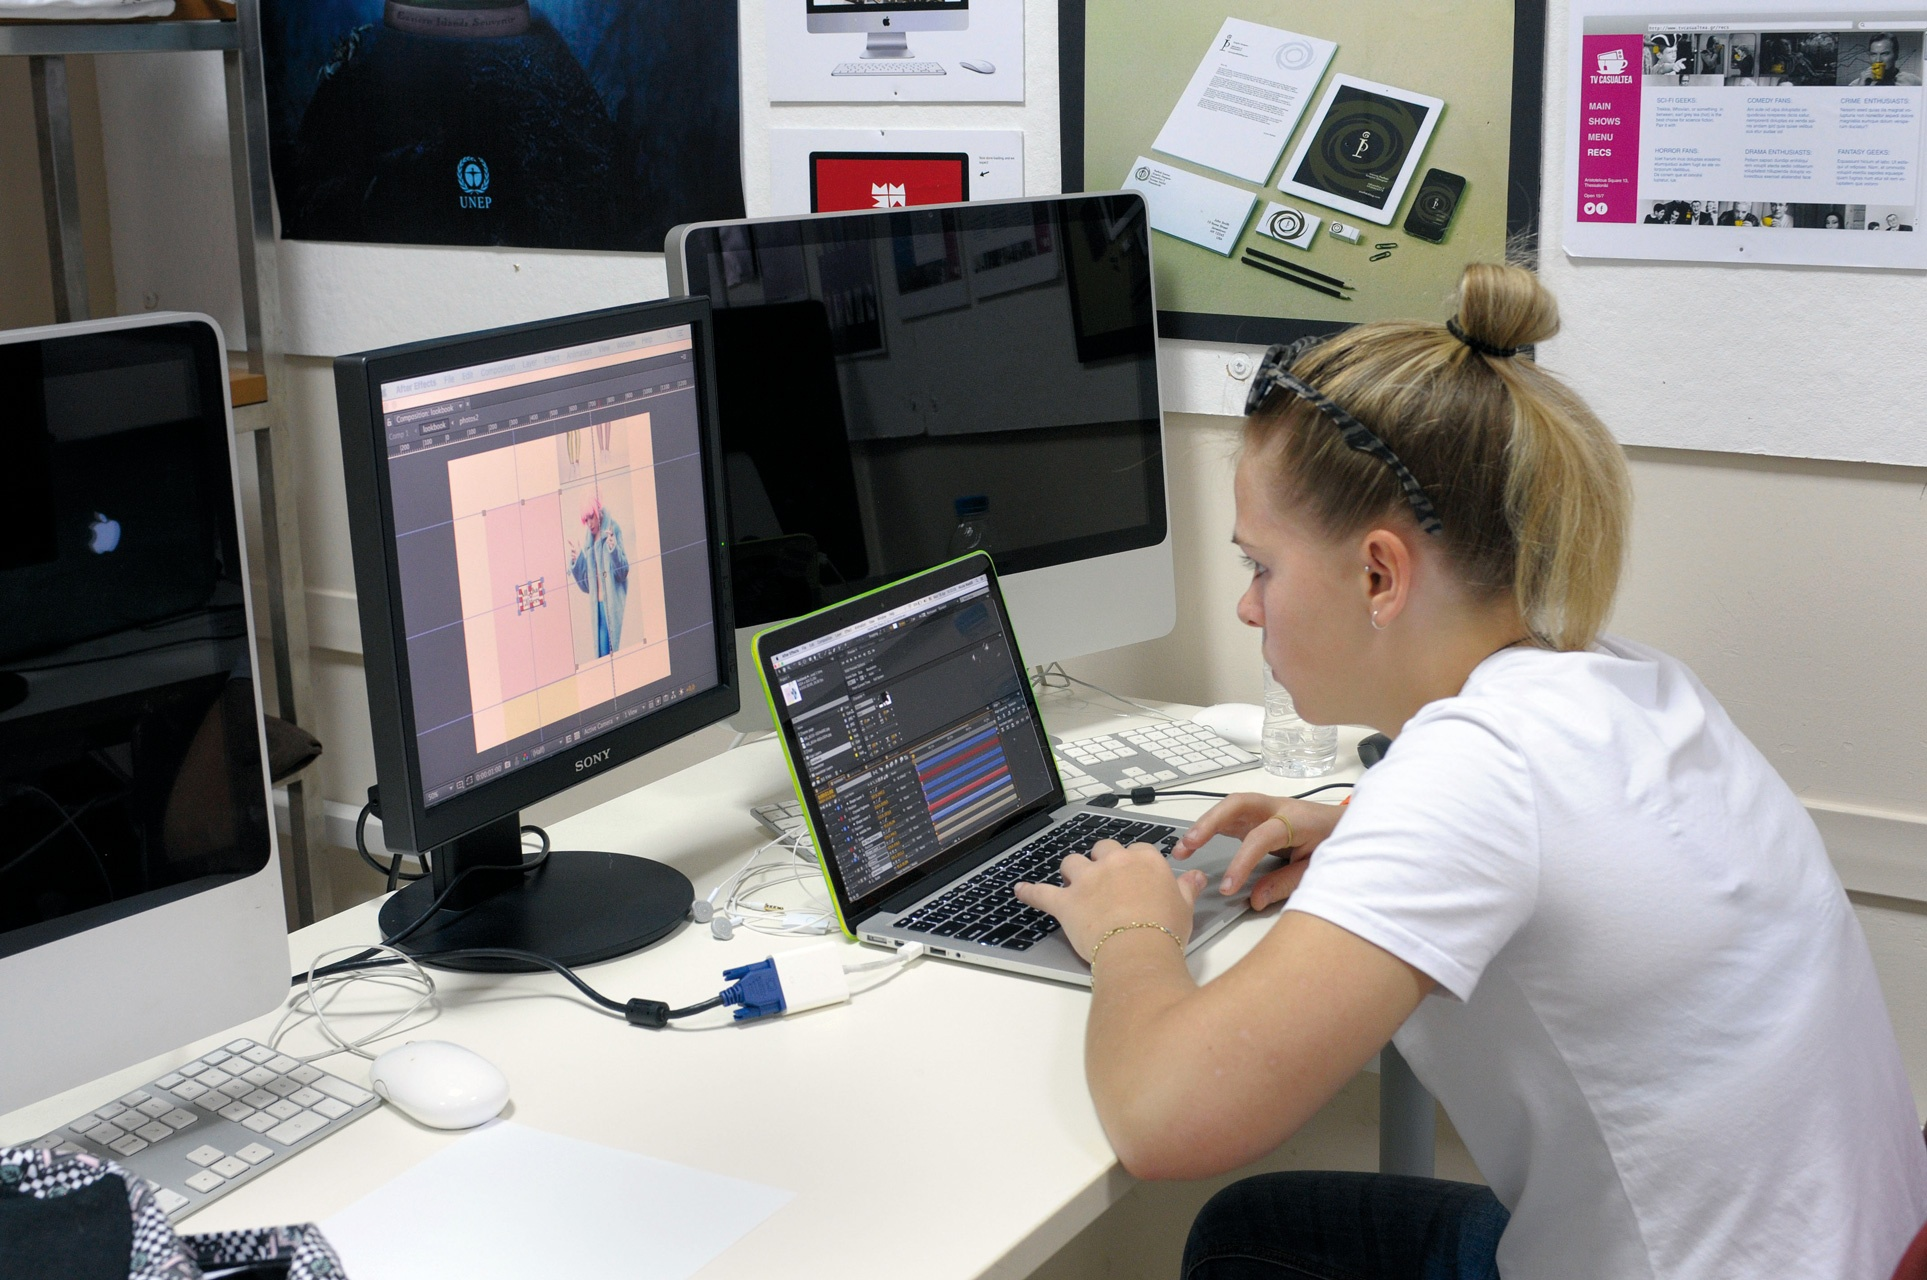 Access to the full range of dedicated art and design facilities